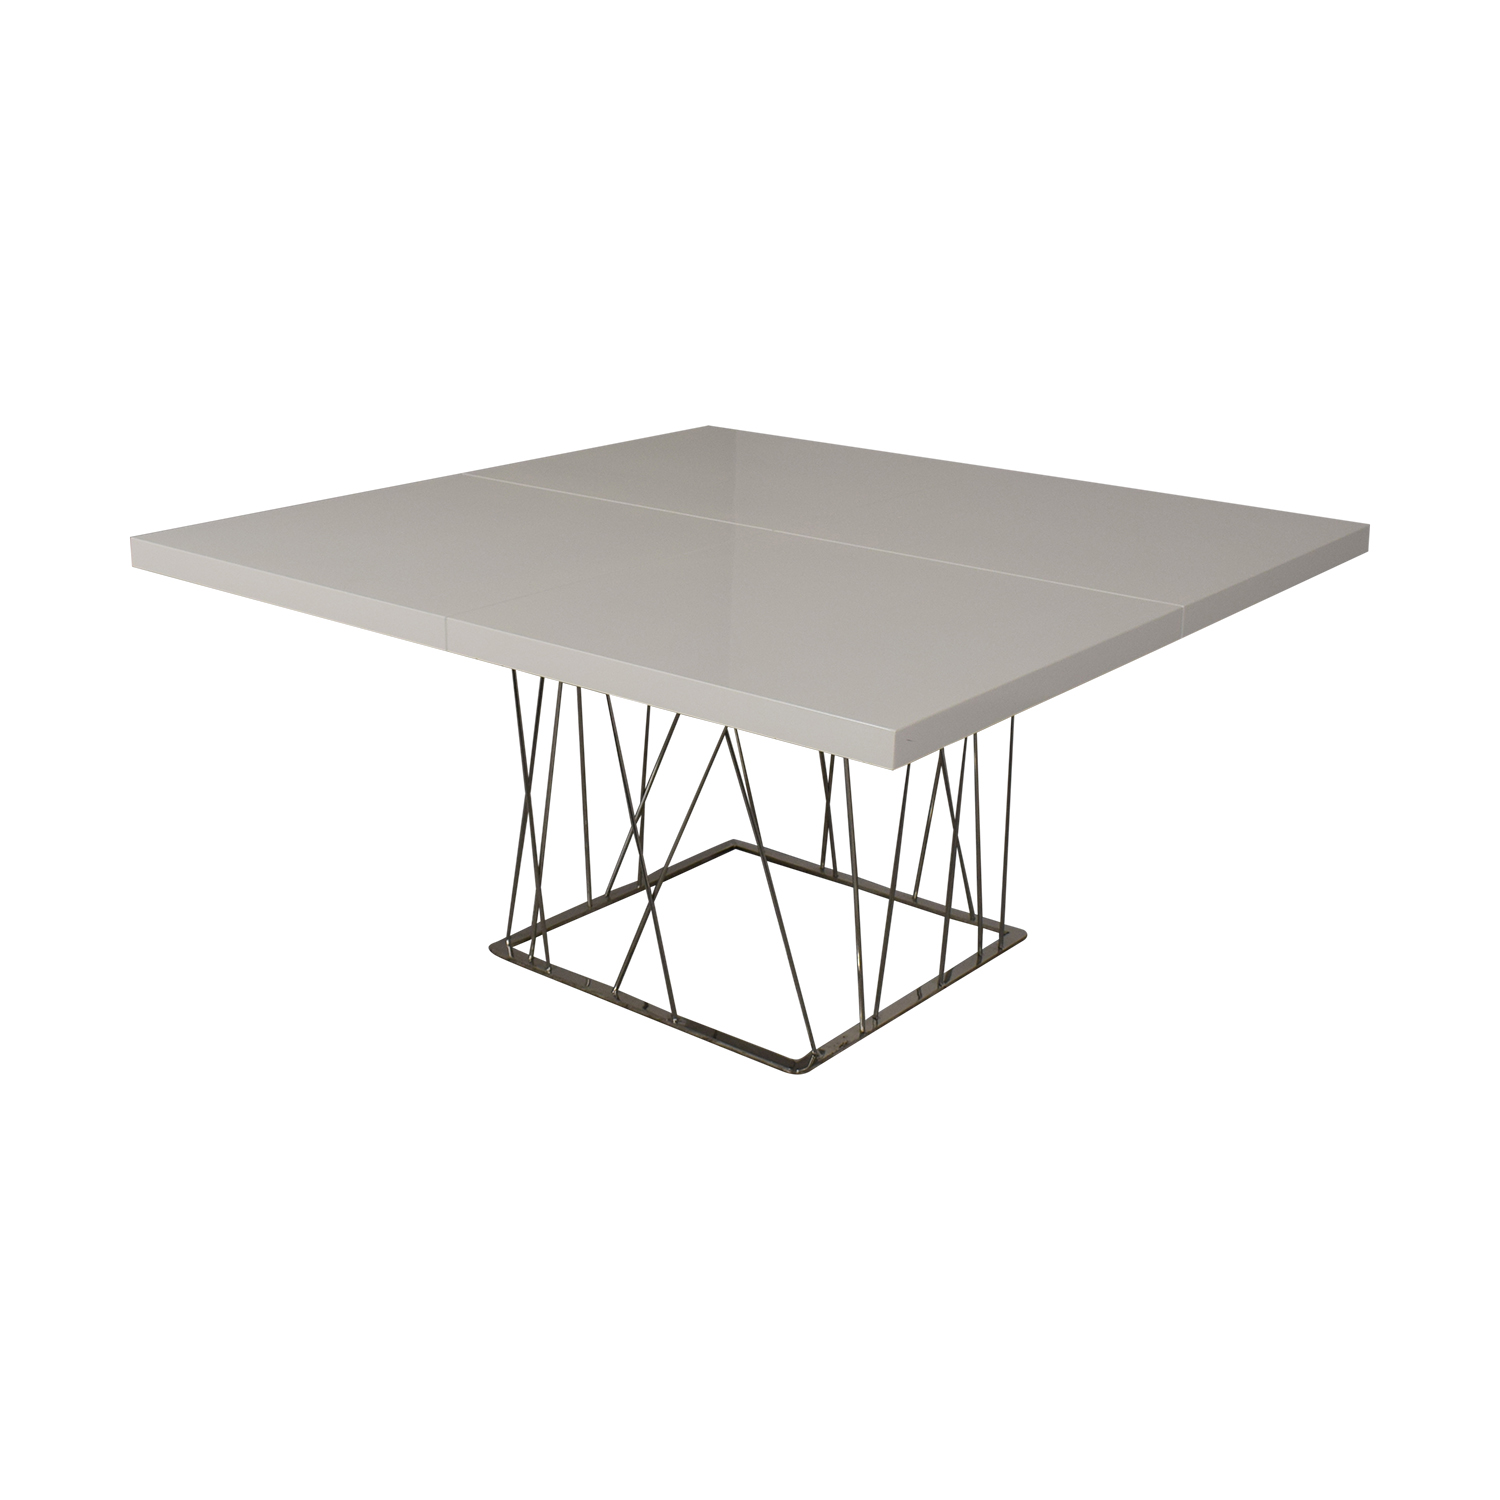 Modloft Modloft Clarges Glossy White Table for sale